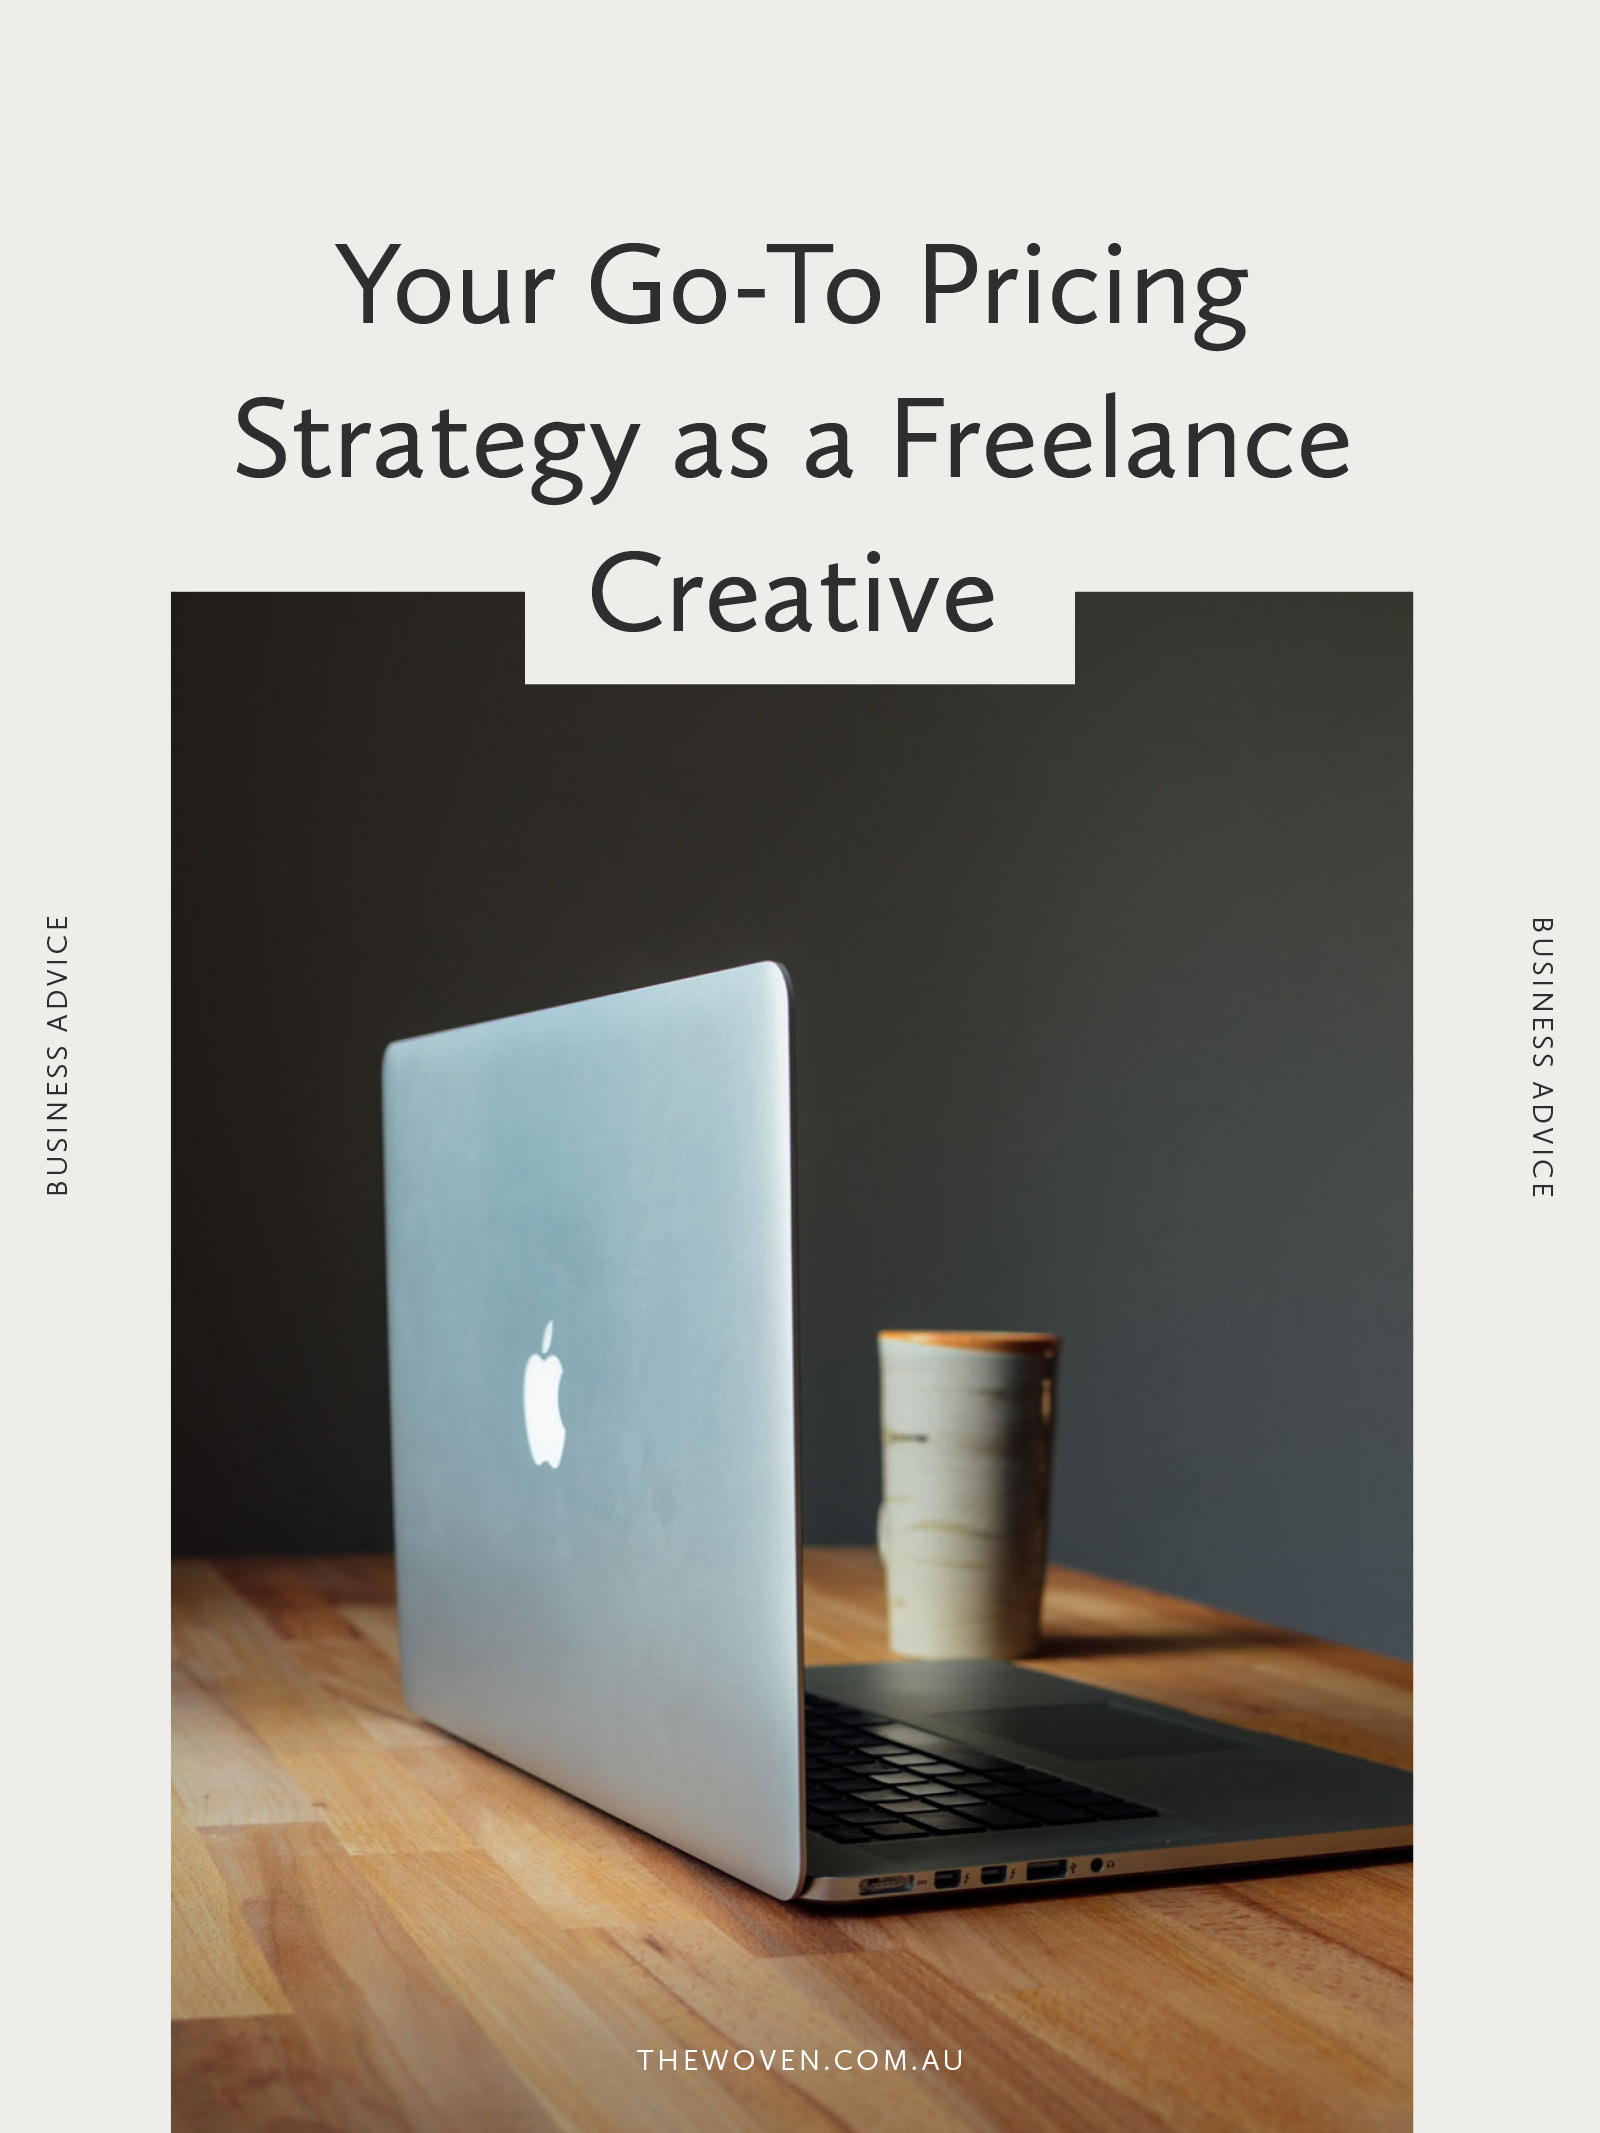 Your go-to pricing strategy as a freelance creative